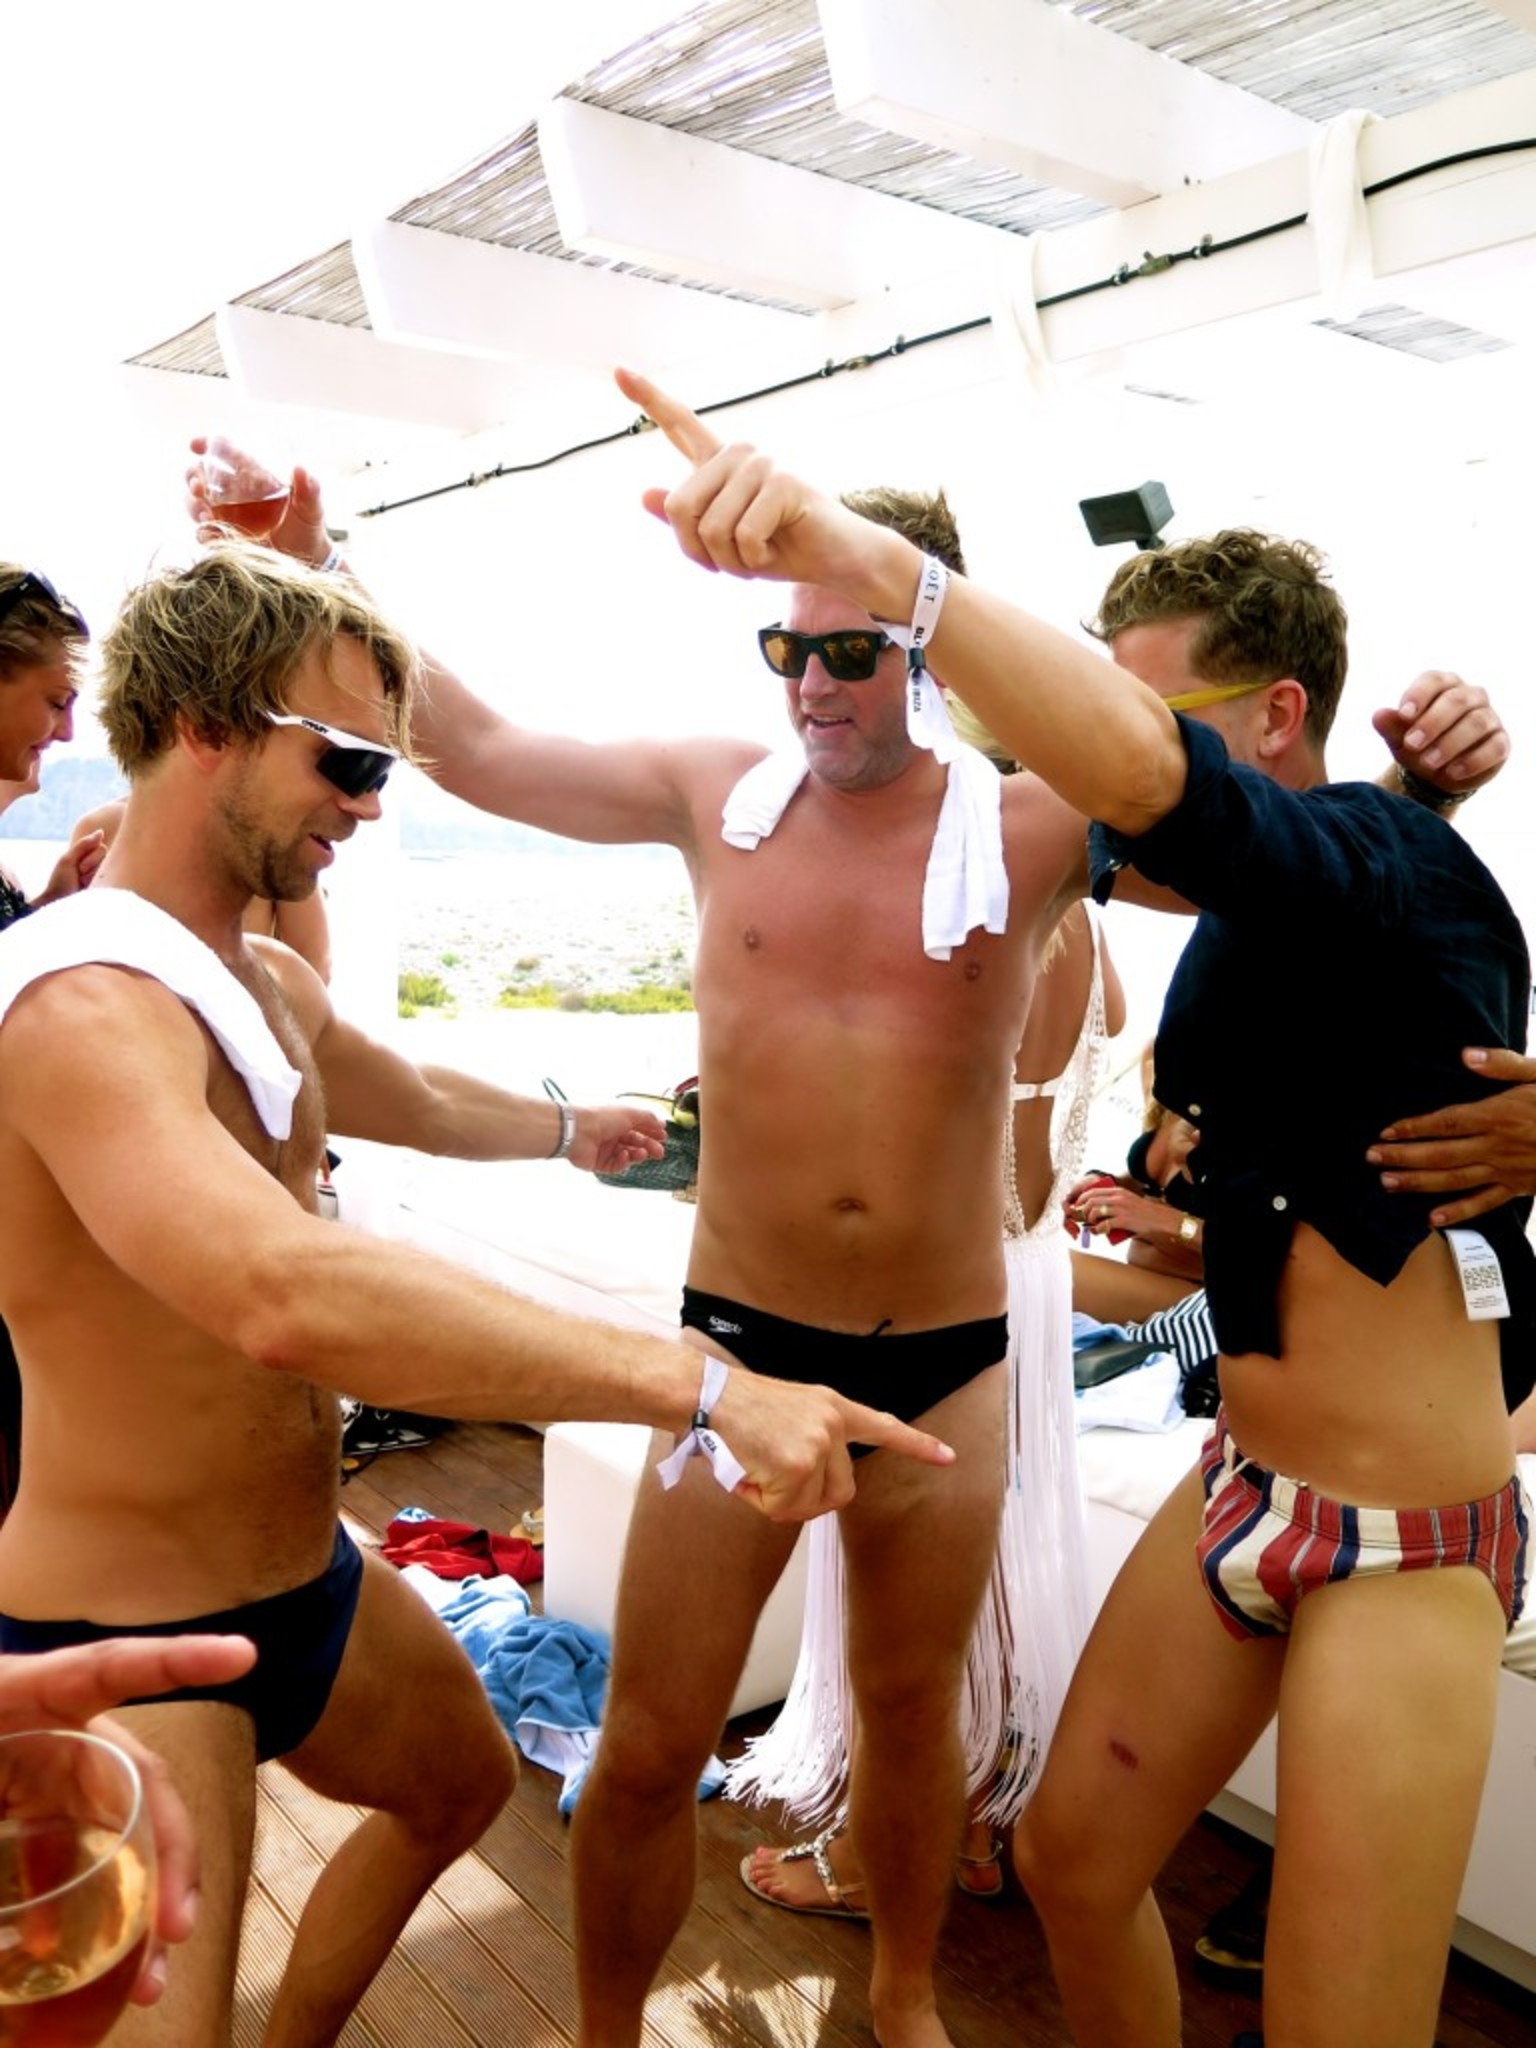 Okay, 3,2,1 - LEGGO !!!! Blue Marlin <3 Ibiza - Sunday Service!! Speedo crew! Arvid, Stallion and Beckman, who else dare???